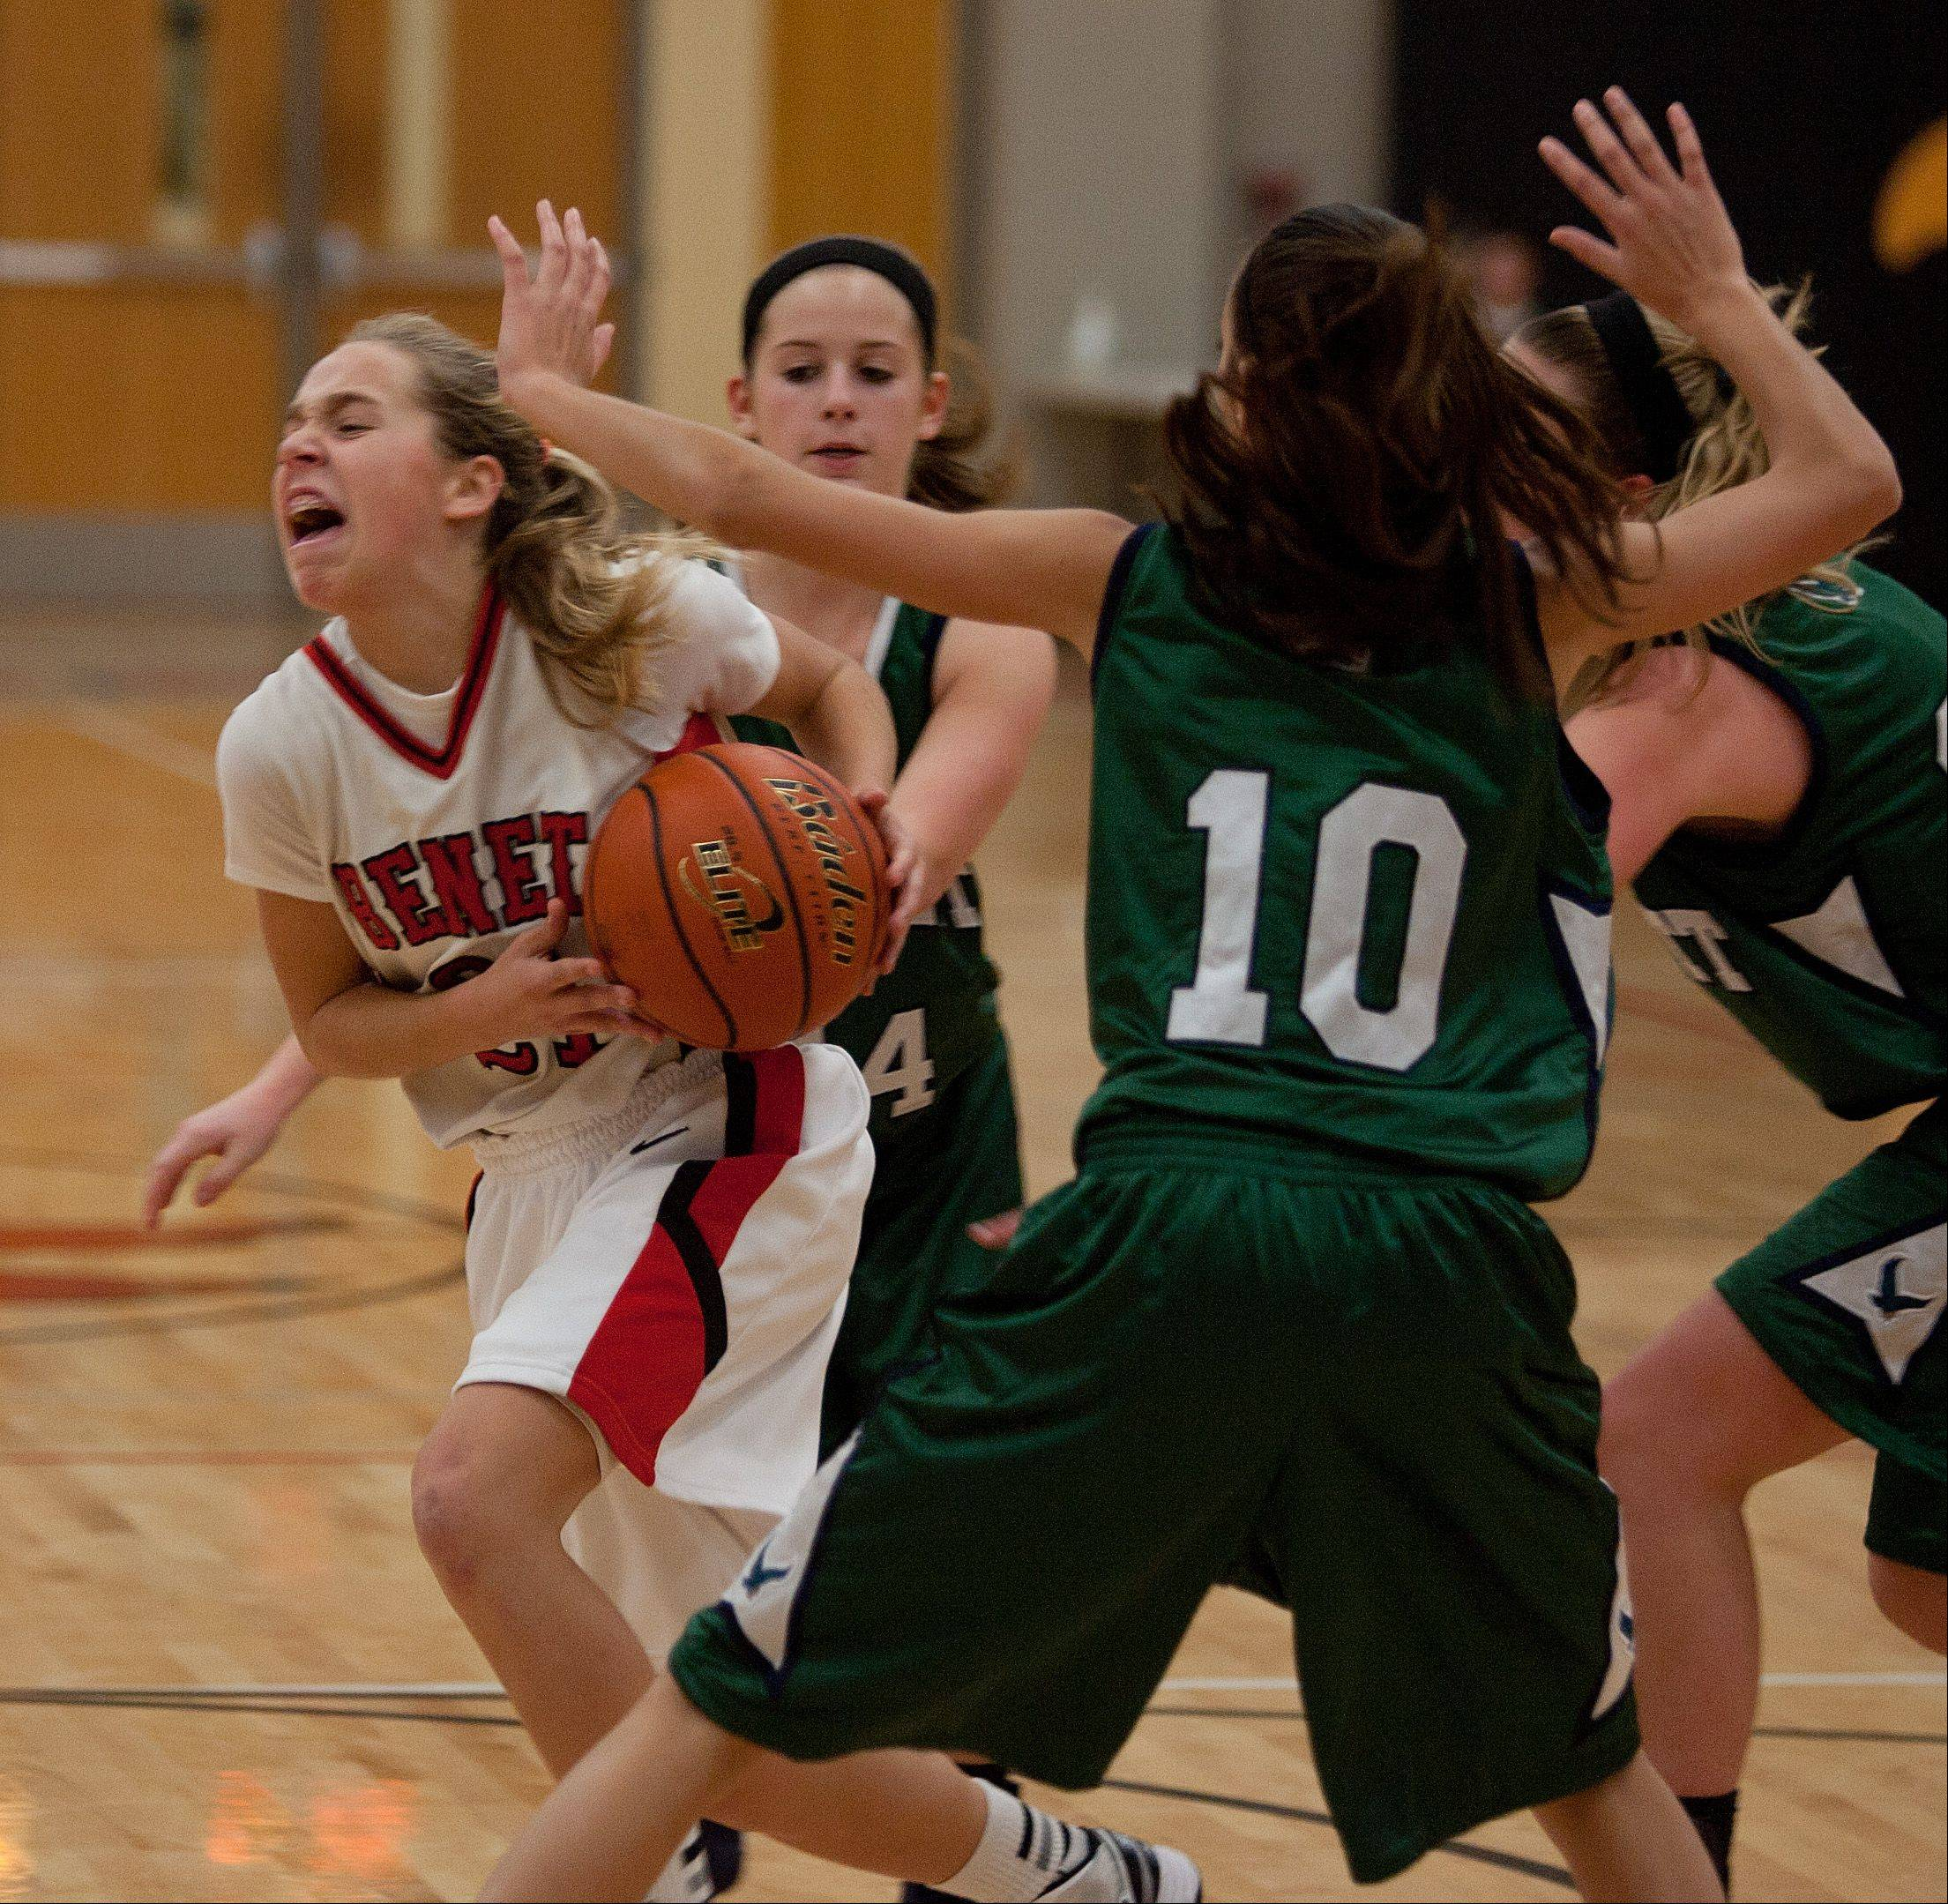 Benet�s Kathleen Doyle, left, drives past Bartlett�s Nicole Gerdevich, during girls basketball action at Benet.